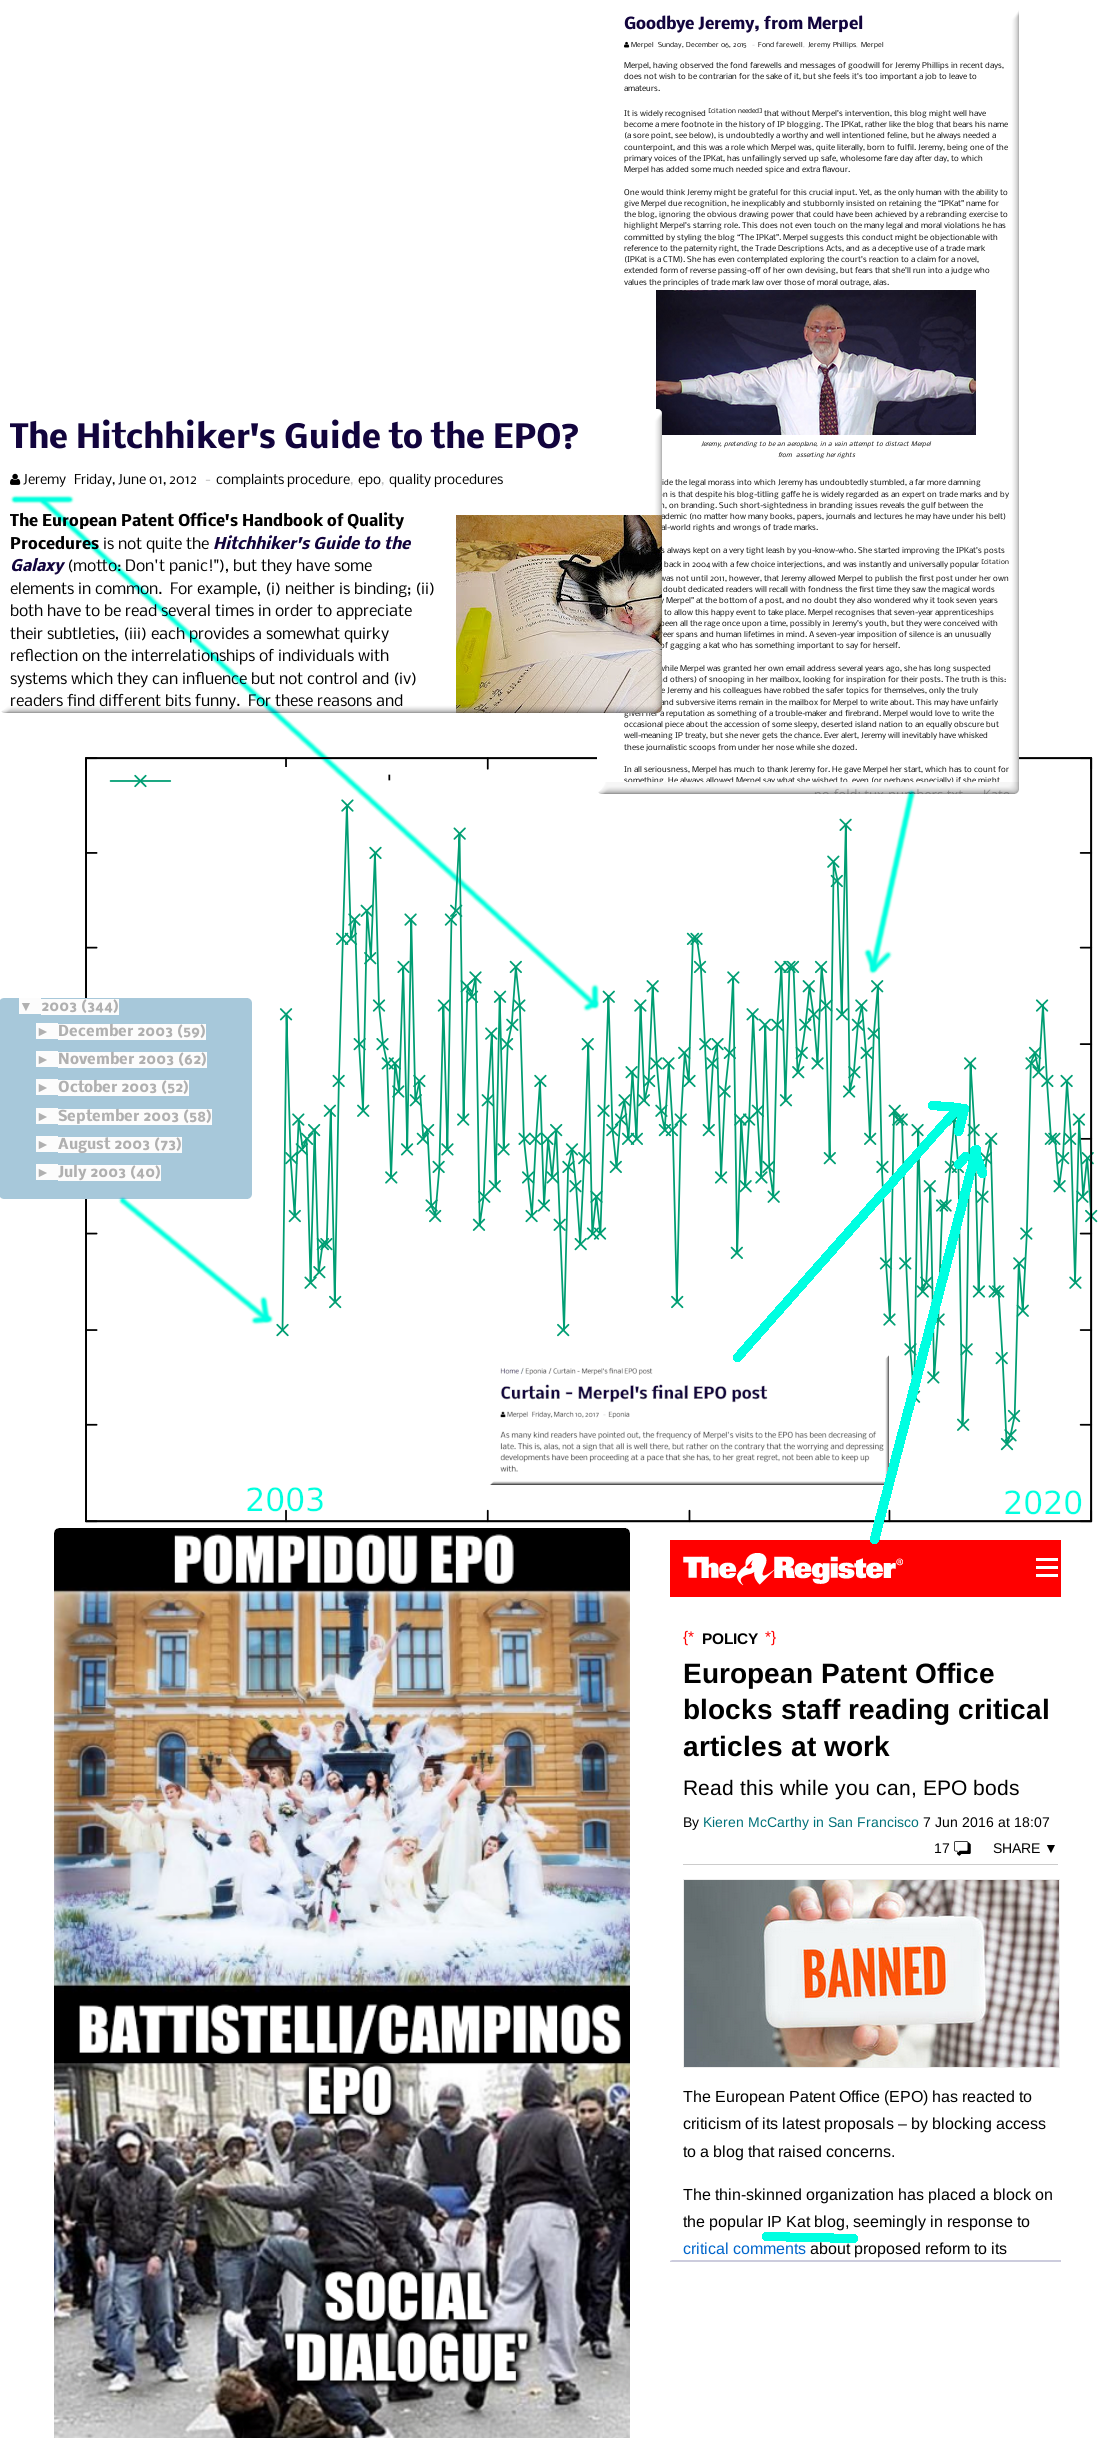 IP Kat timeline: Pompidou EPO and Battistelli/Campinos EPO; Social 'dialogue'